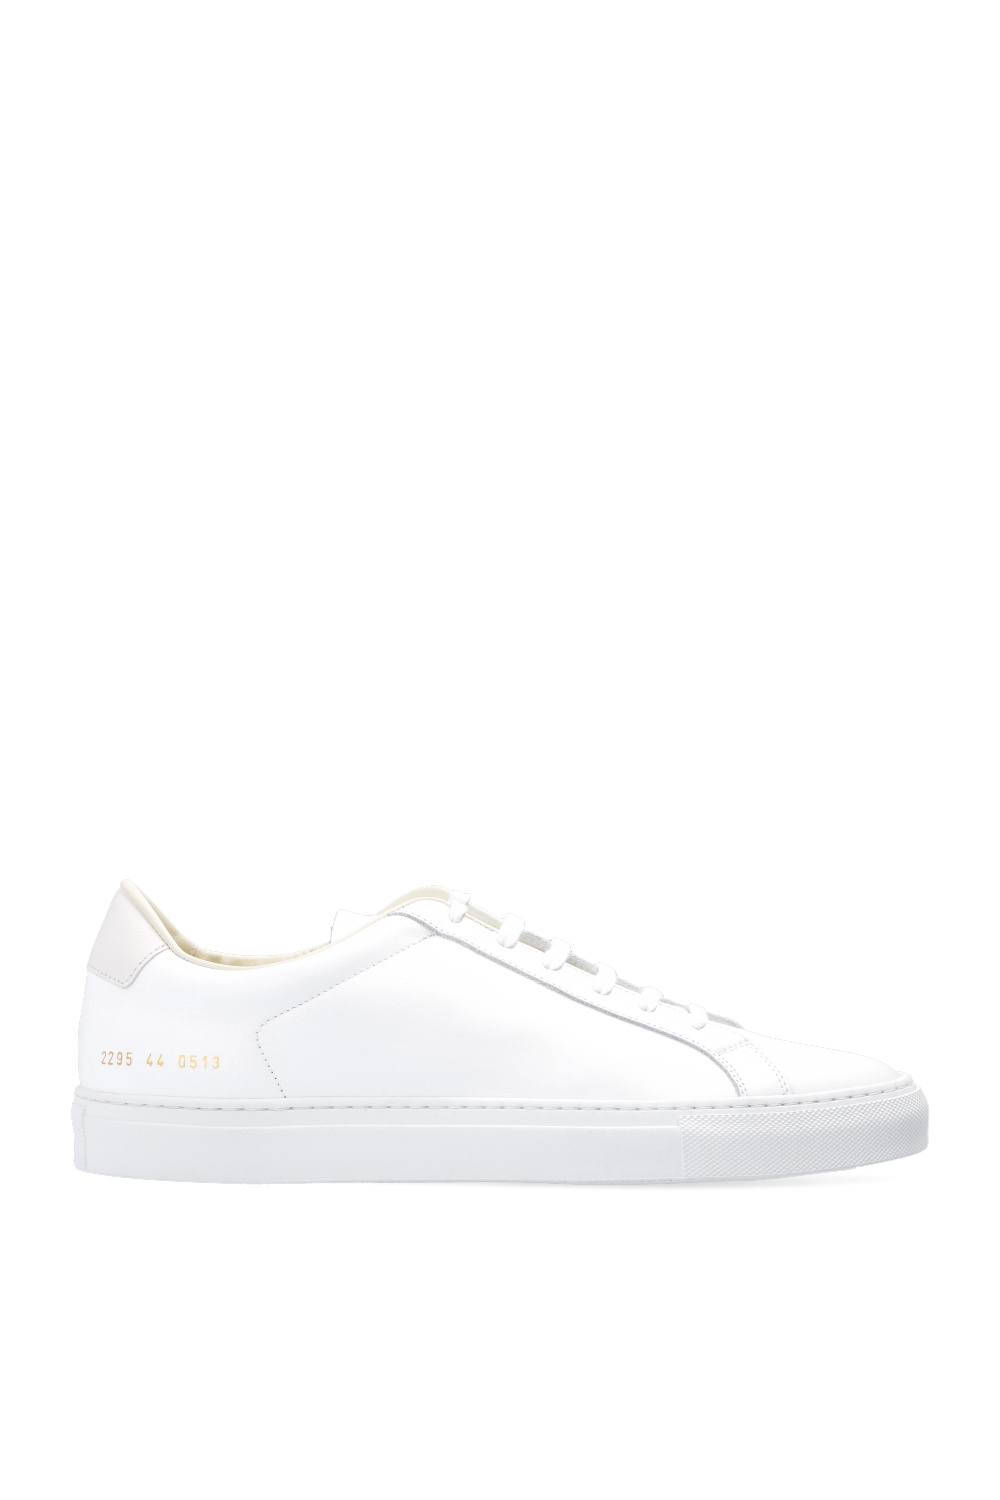 Common Projects 'Retro Low' sneakers